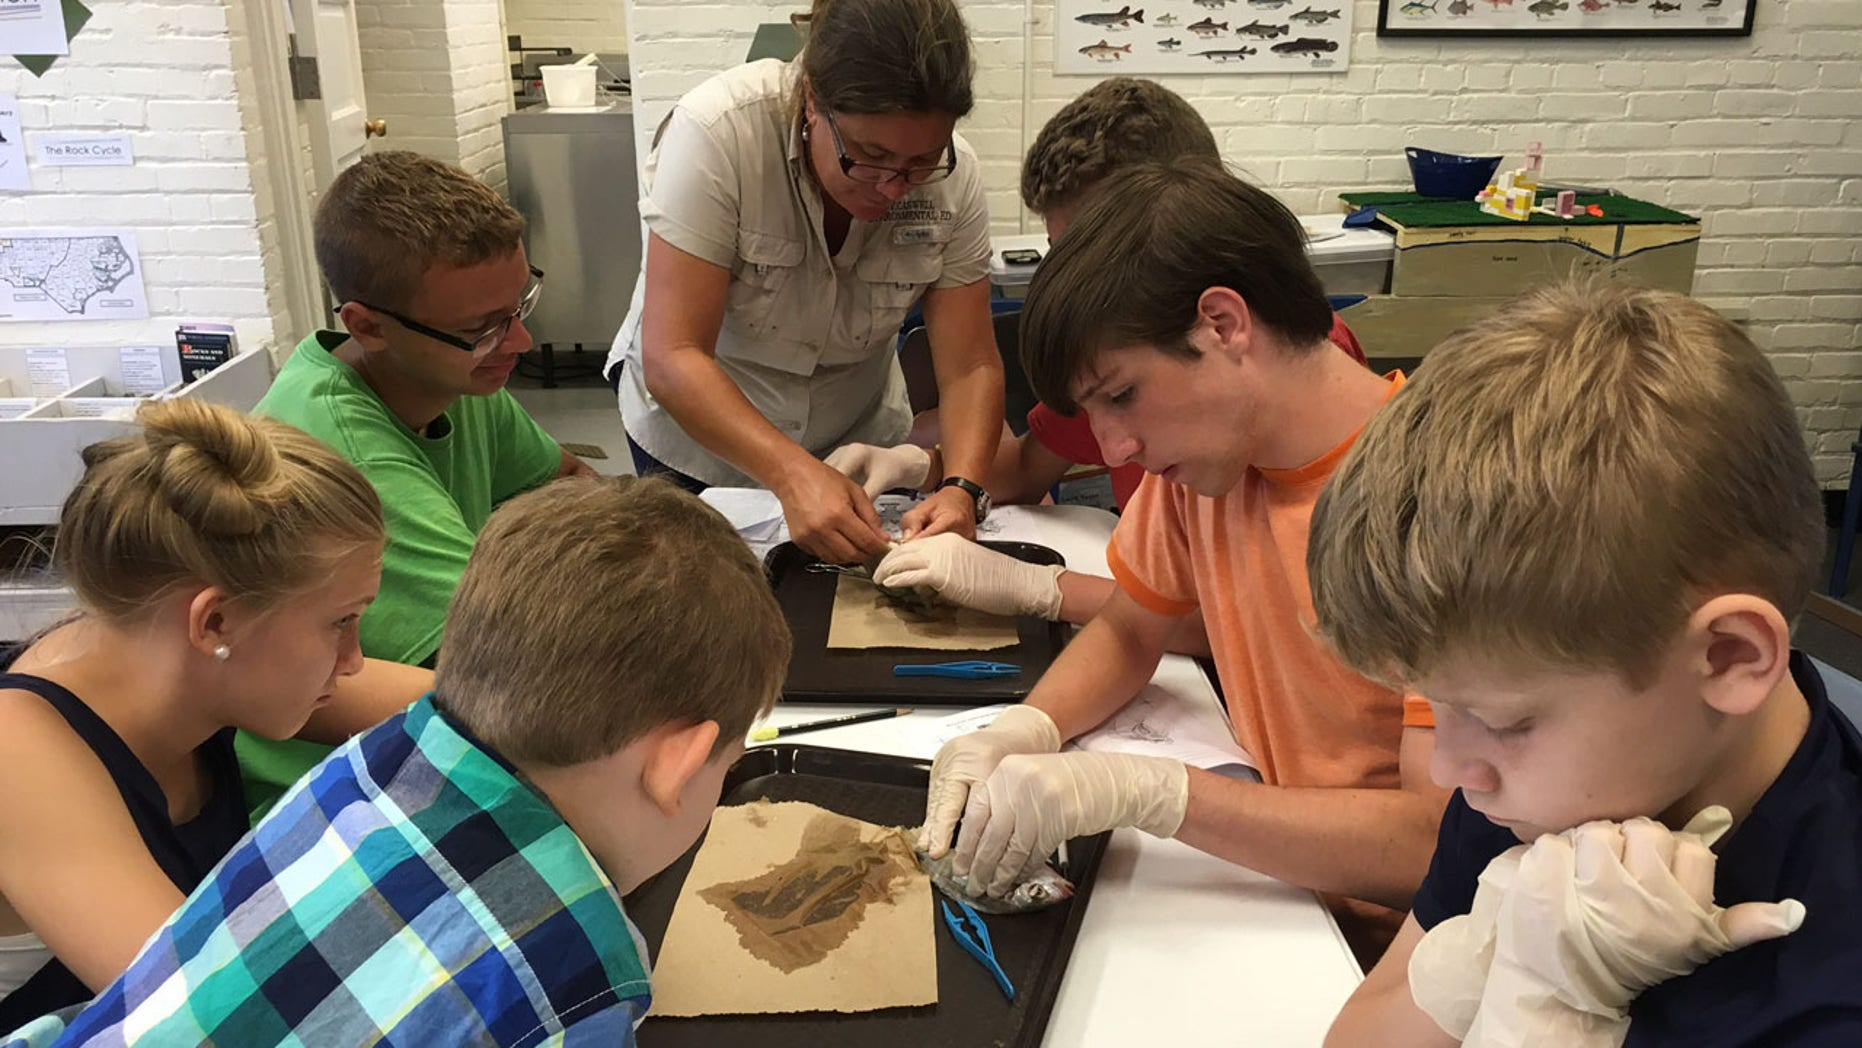 A homeschool biology class/dissection lab that Homeschool Road Trips — a division of Hip Homeschool Moms had during one of their HEART trips (Homeschool Educational Adventure Road Trips) to Fort Caswell, North Carolina.